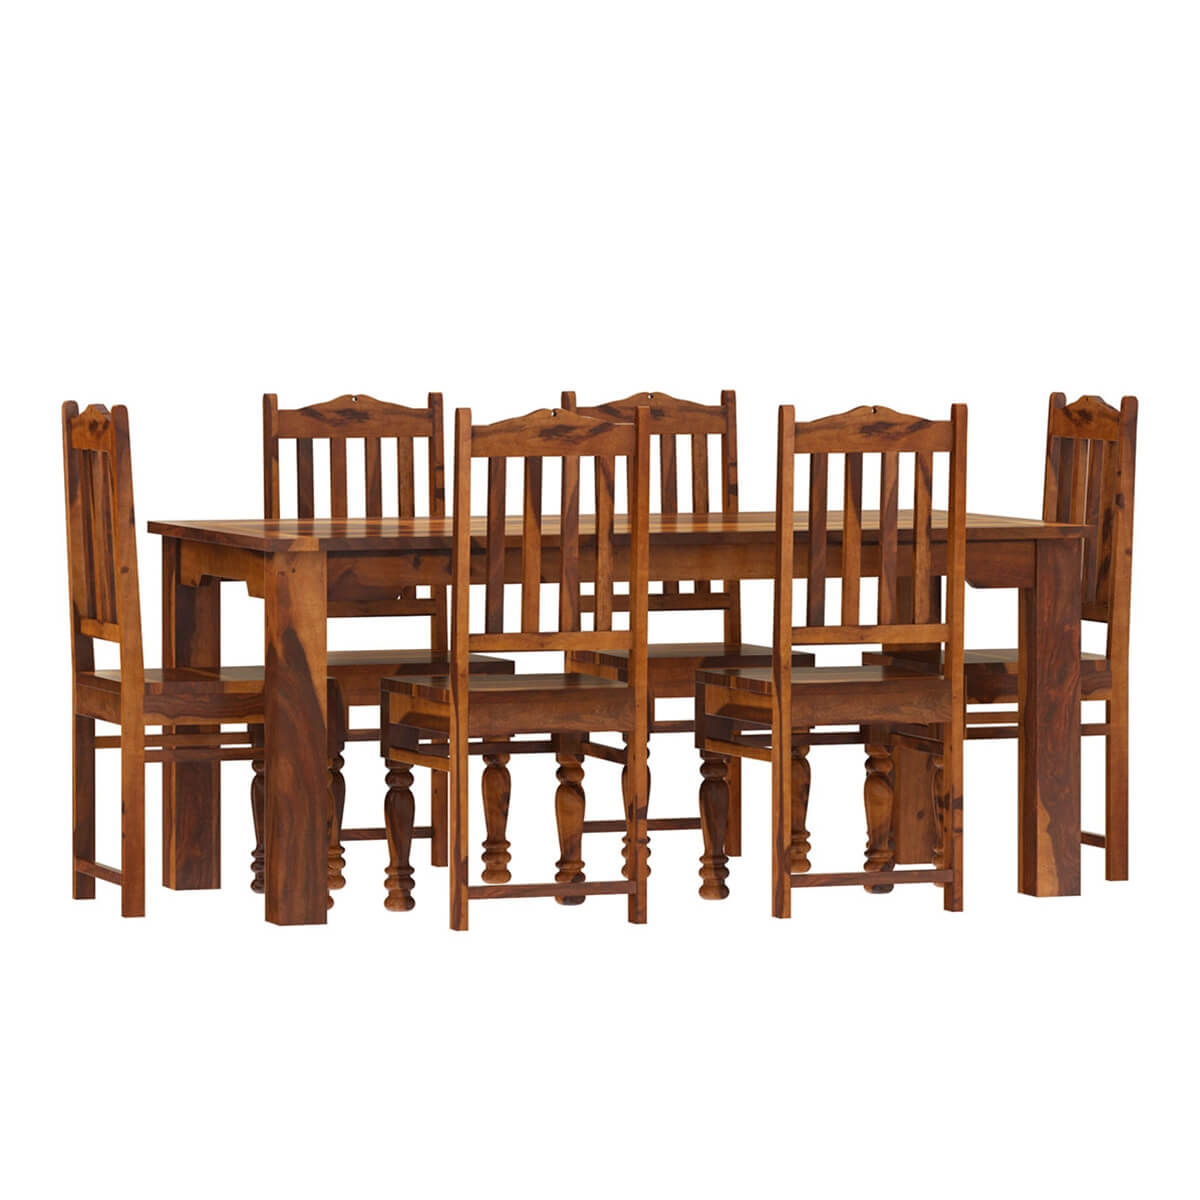 Rustic Wooden Dining Tables ~ Rustic solid wood dallas dining table with chairs set